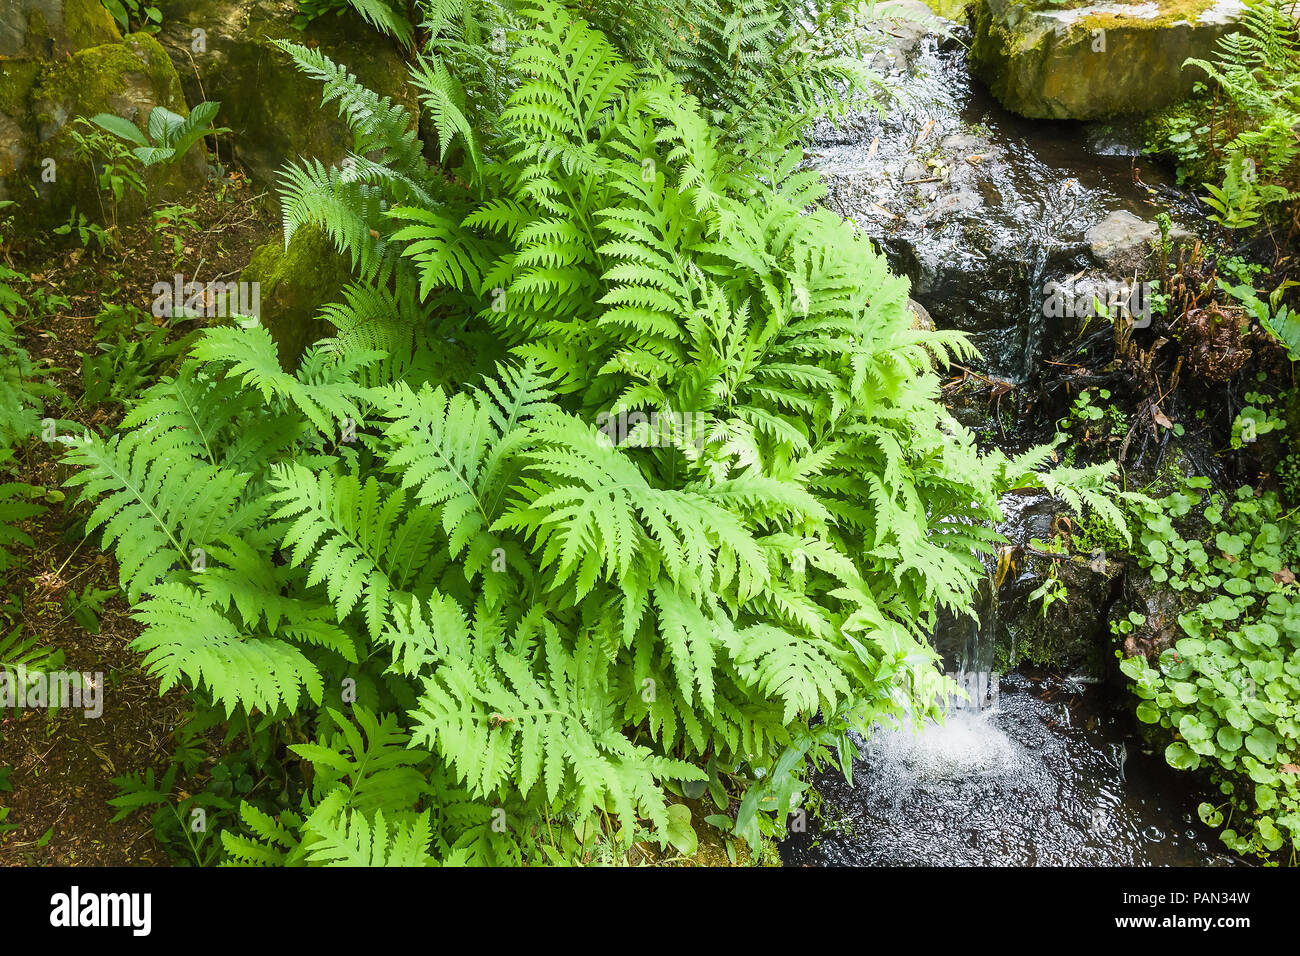 Chrysospplenium macrophyllum growing in a damp location next to a natural stream of water in an English garden in June Stock Photo